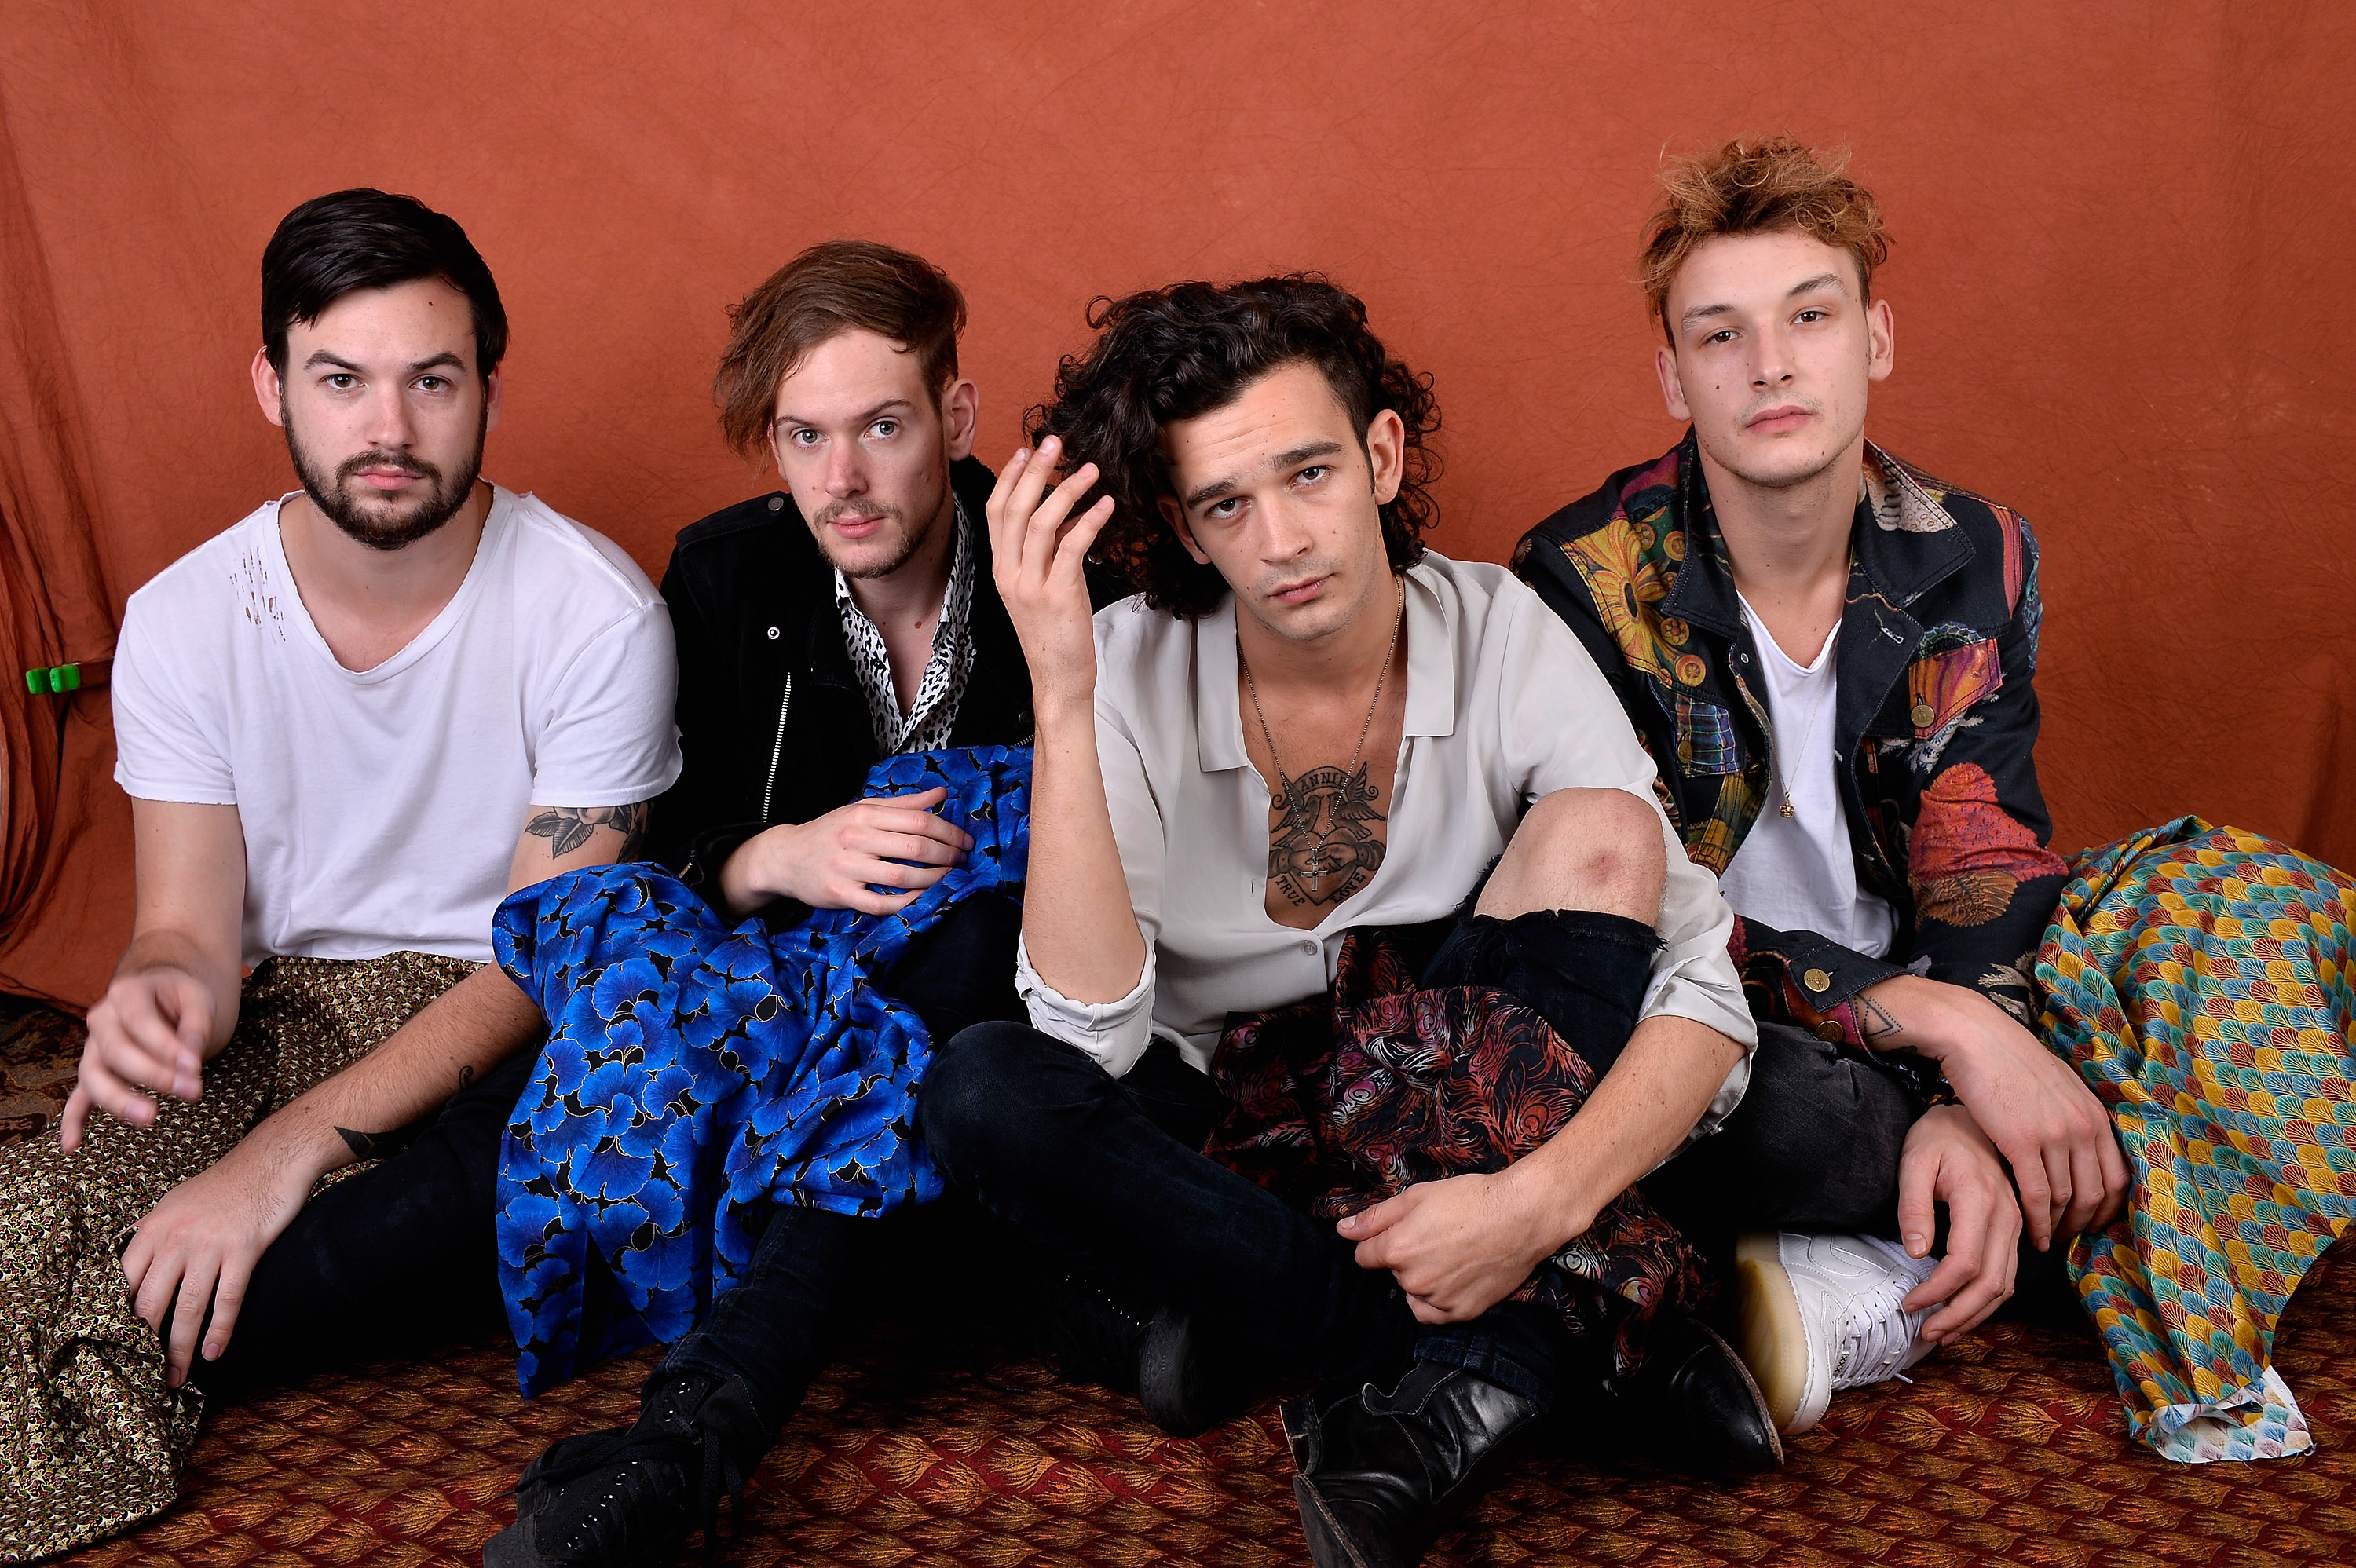 The 1975 band members, George Daniel, Adam Hann, Matthew Healy and Ross MacDonald, pose for a portrait during the the 2014 Boston Calling Music Festival on Sept. 7, 2014, in Boston